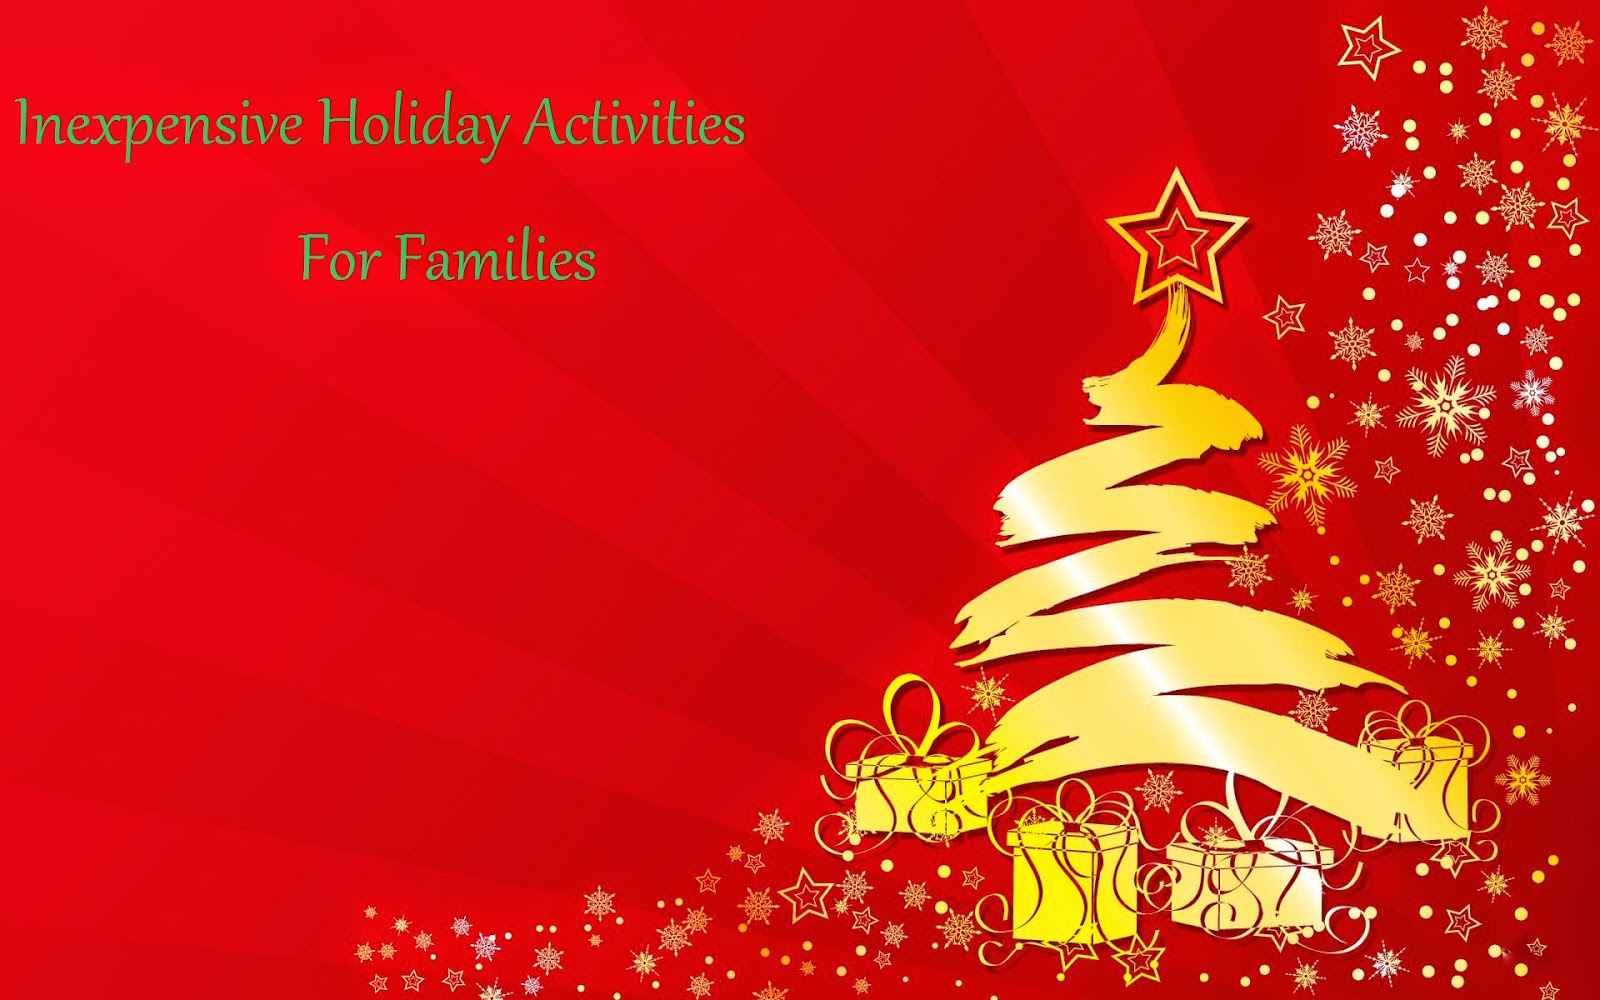 Inexpensive Holiday Activities for Families